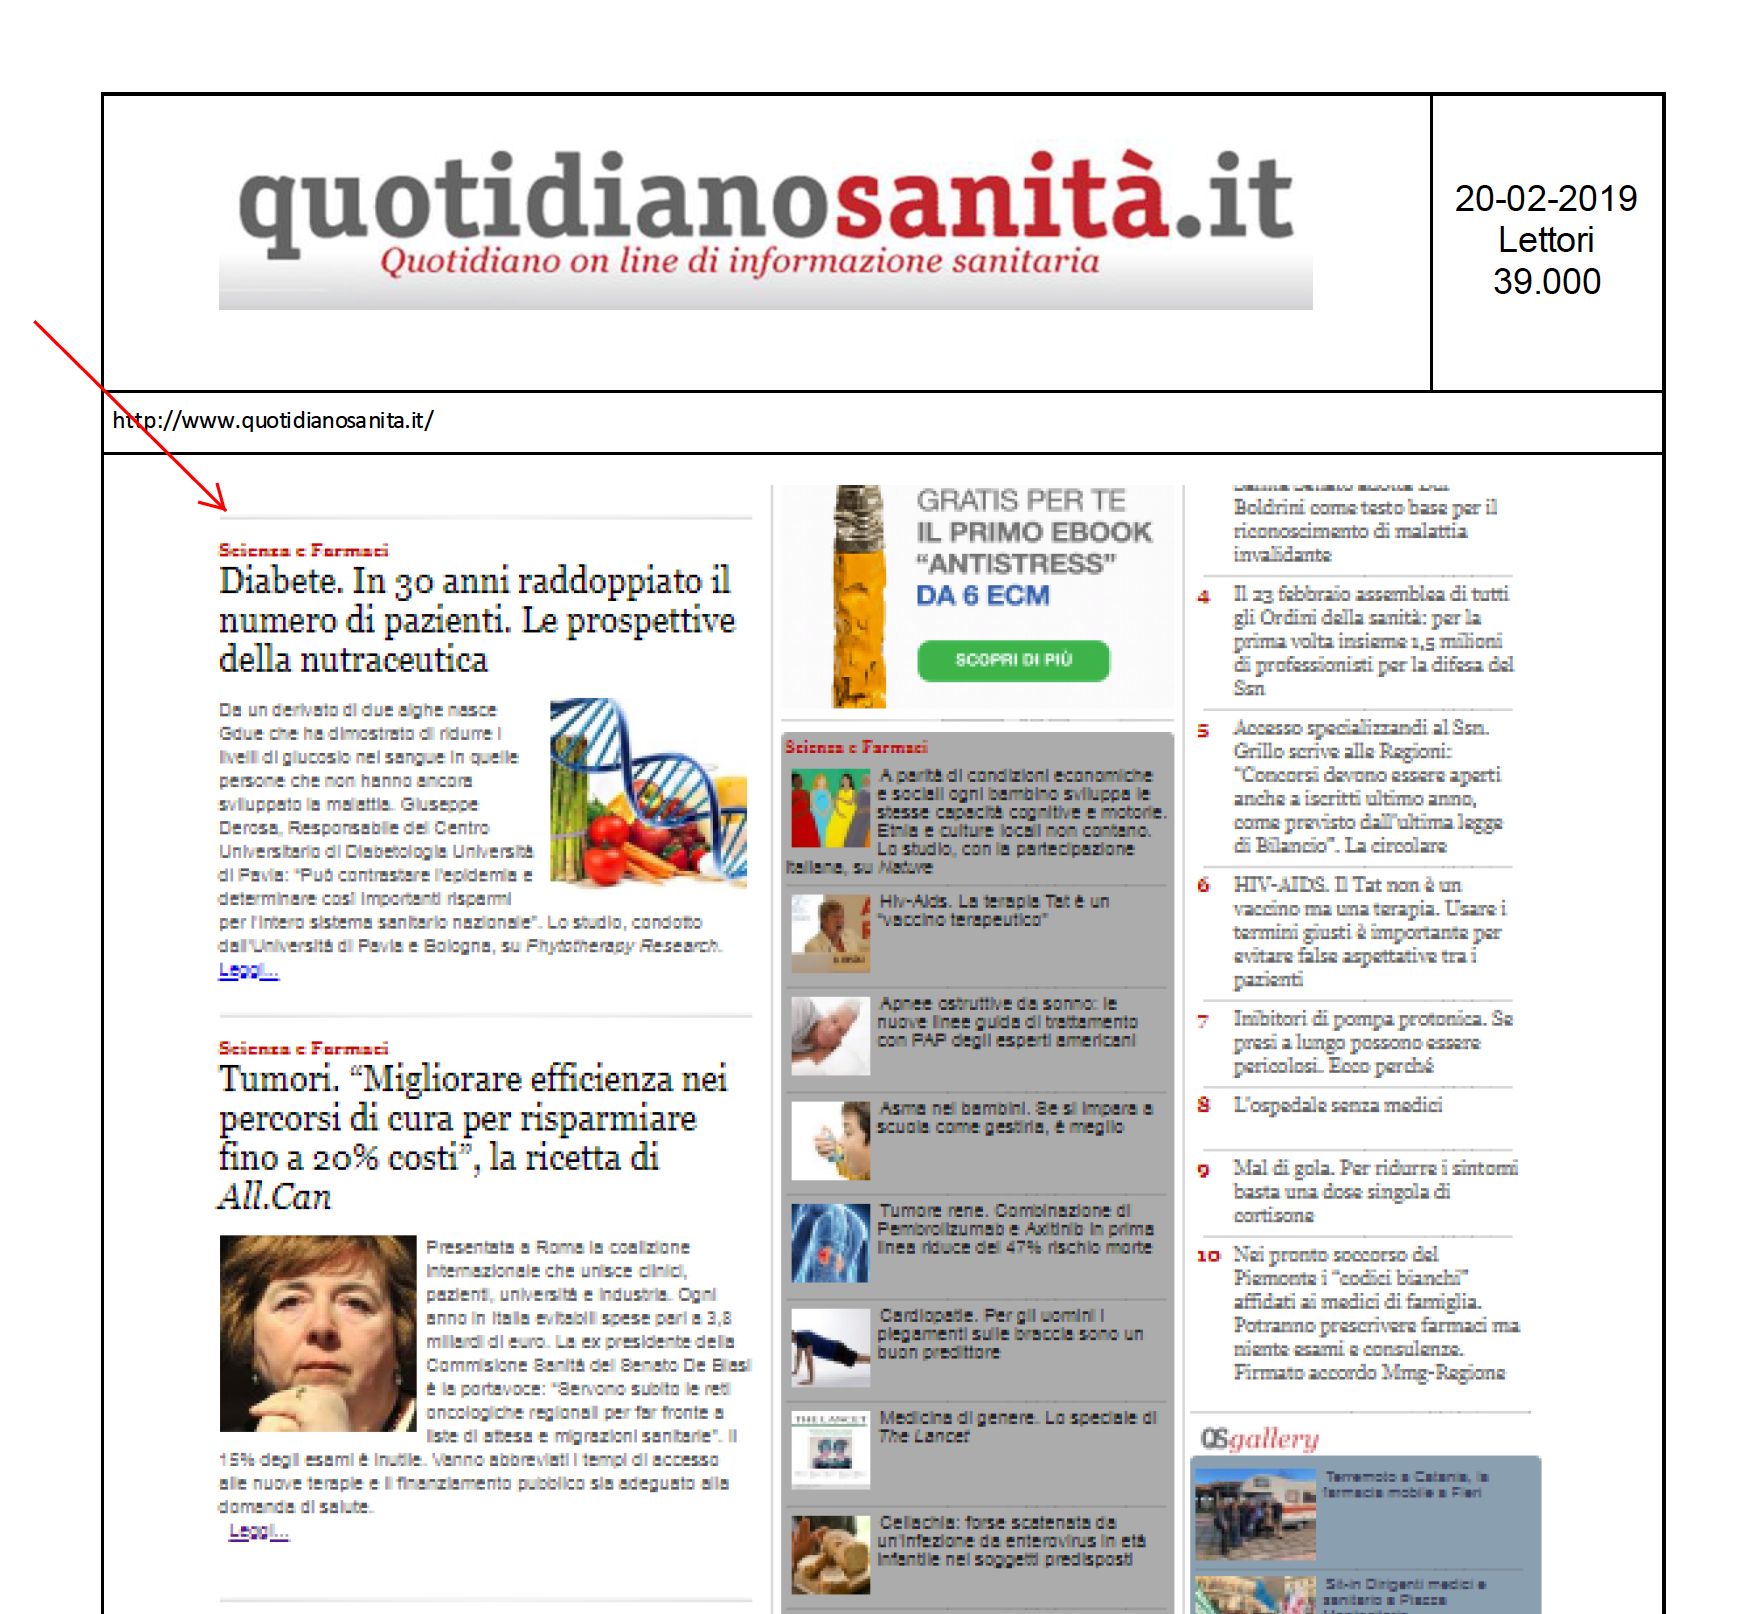 20.02.2019 - QUOTIDIANOSANITA'.IT